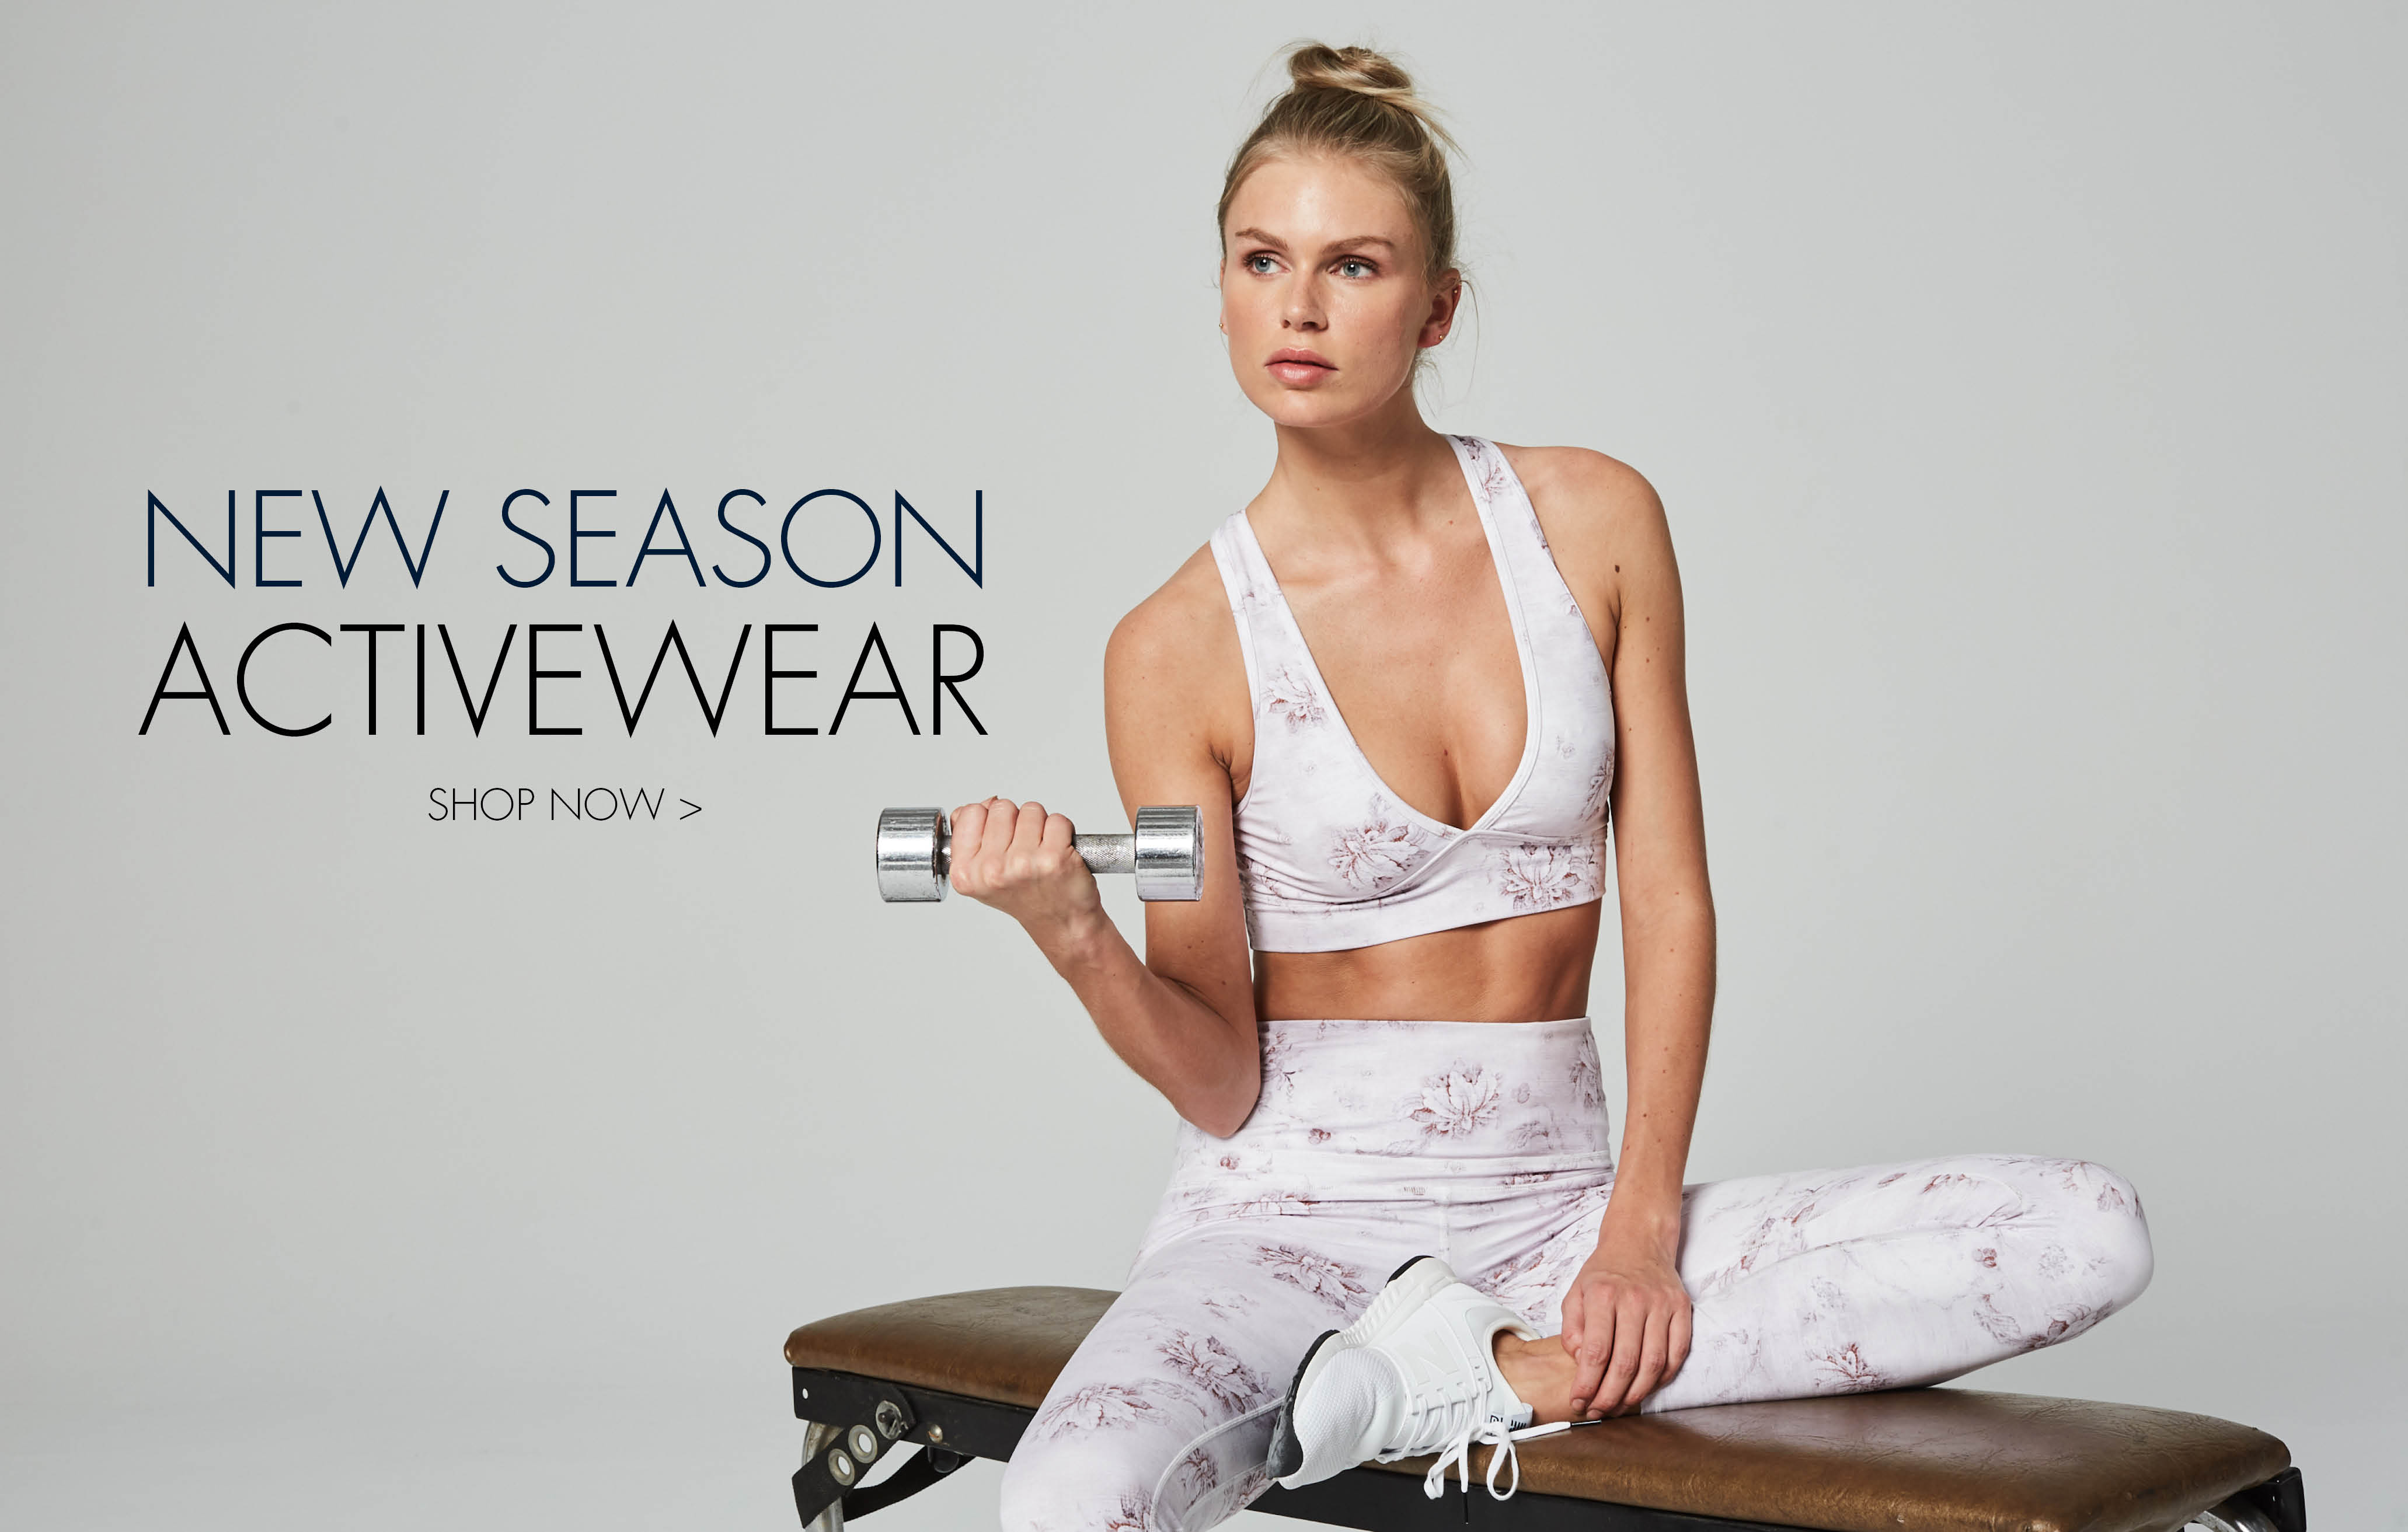 DESIGNER ACTIVEWEAR BY VARLEY, SEAFOLLY, MONREAL LONDON